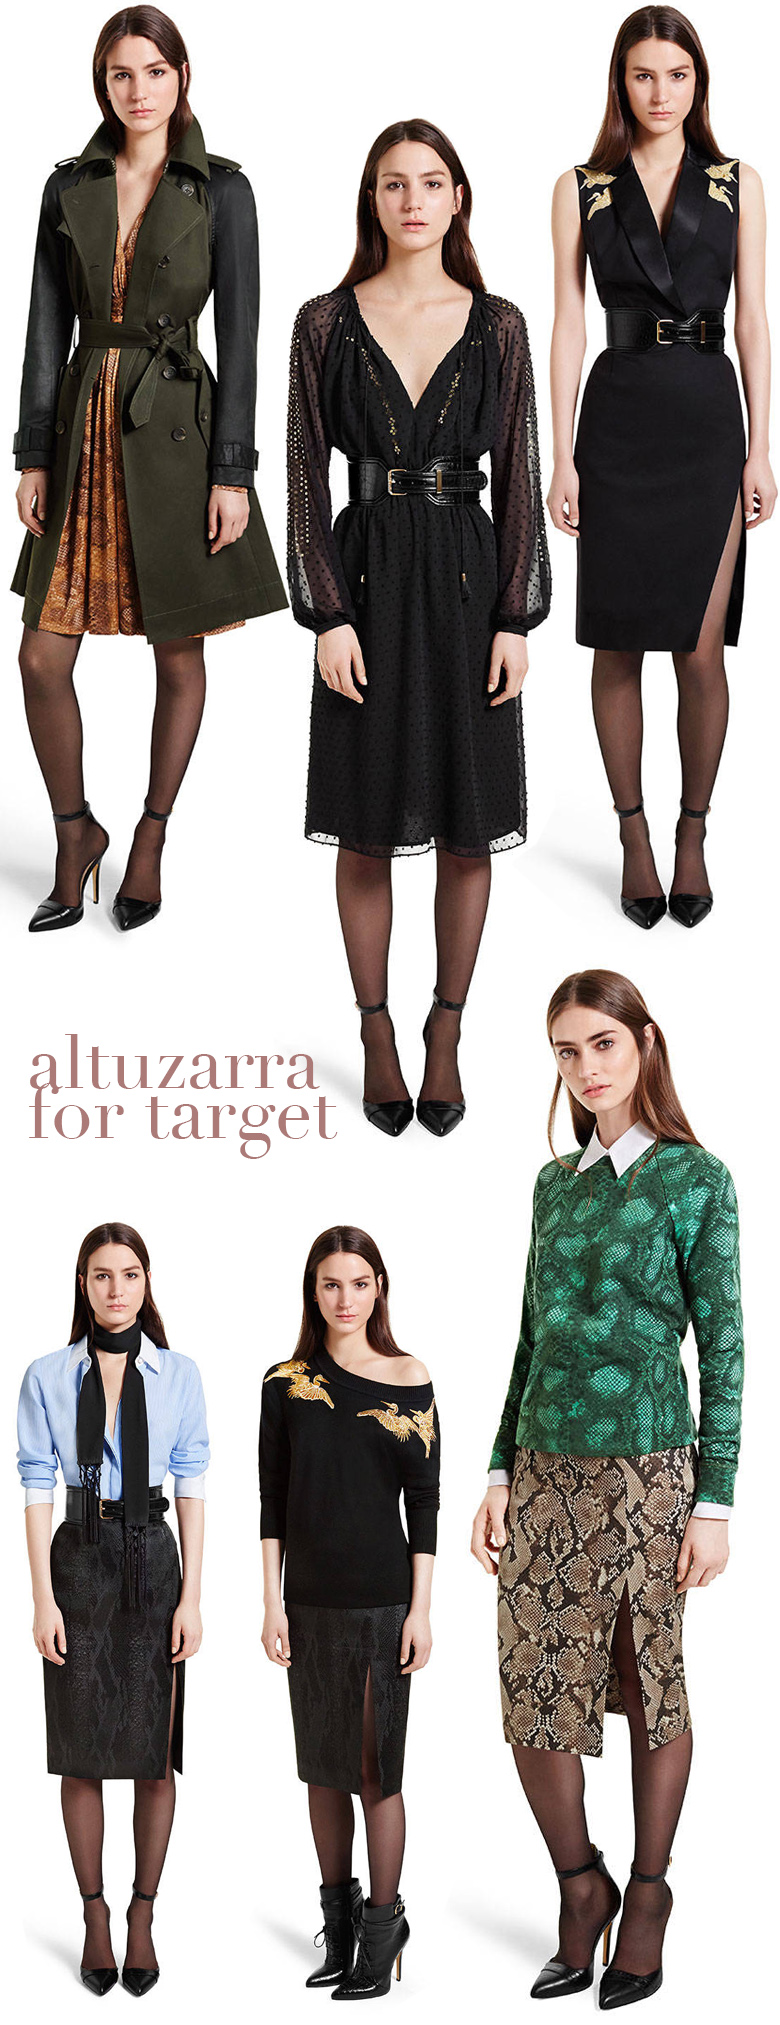 altuzarra-for-target-collection-2014-2